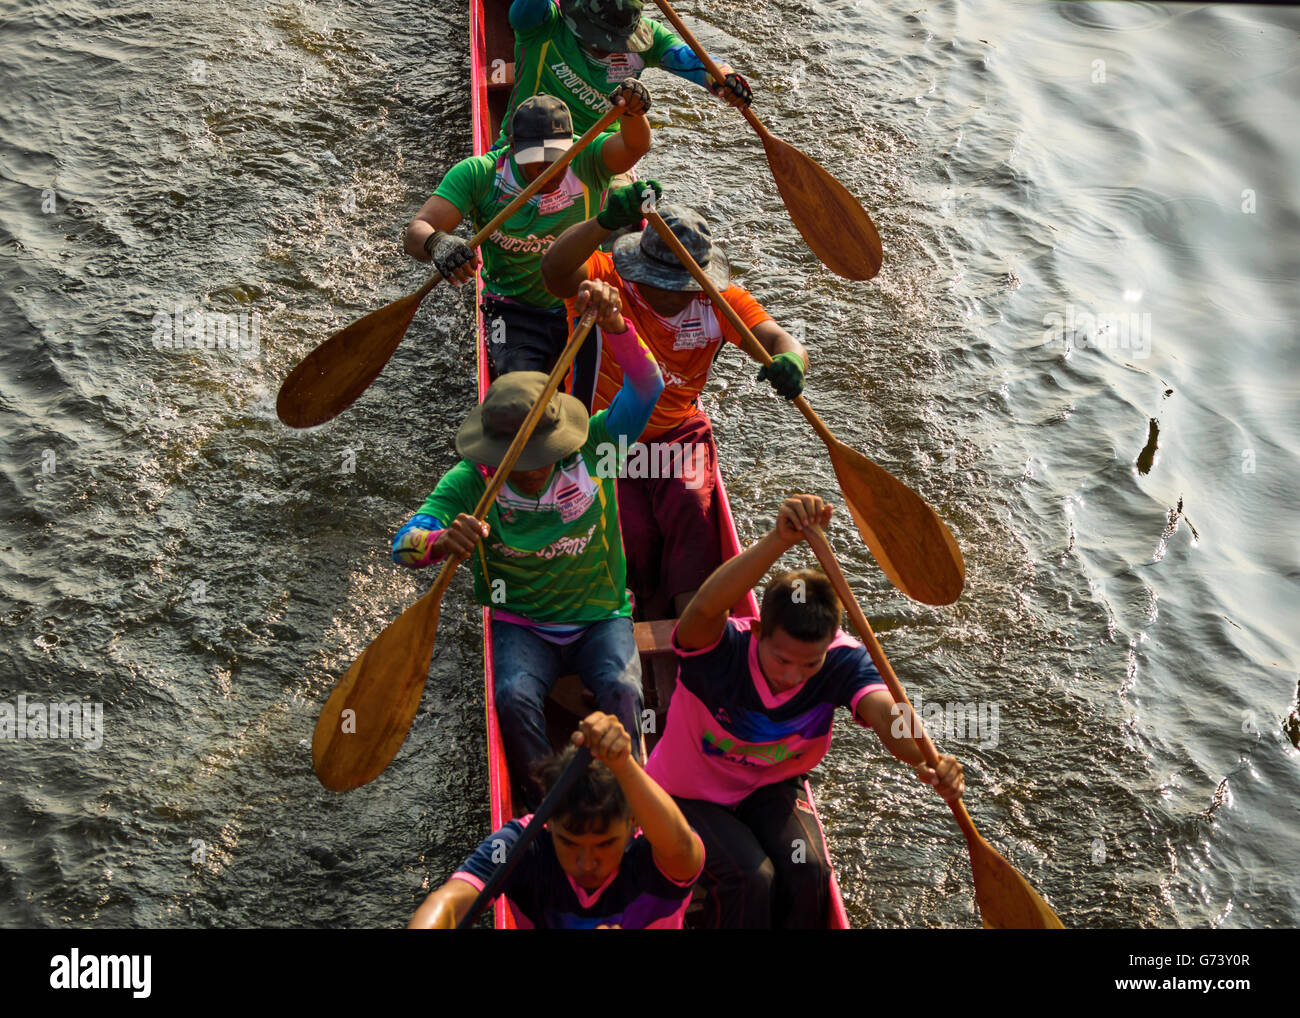 A team taking part in the Longboat racing festival held in the Thai province of Pathum Thani. - Stock Image